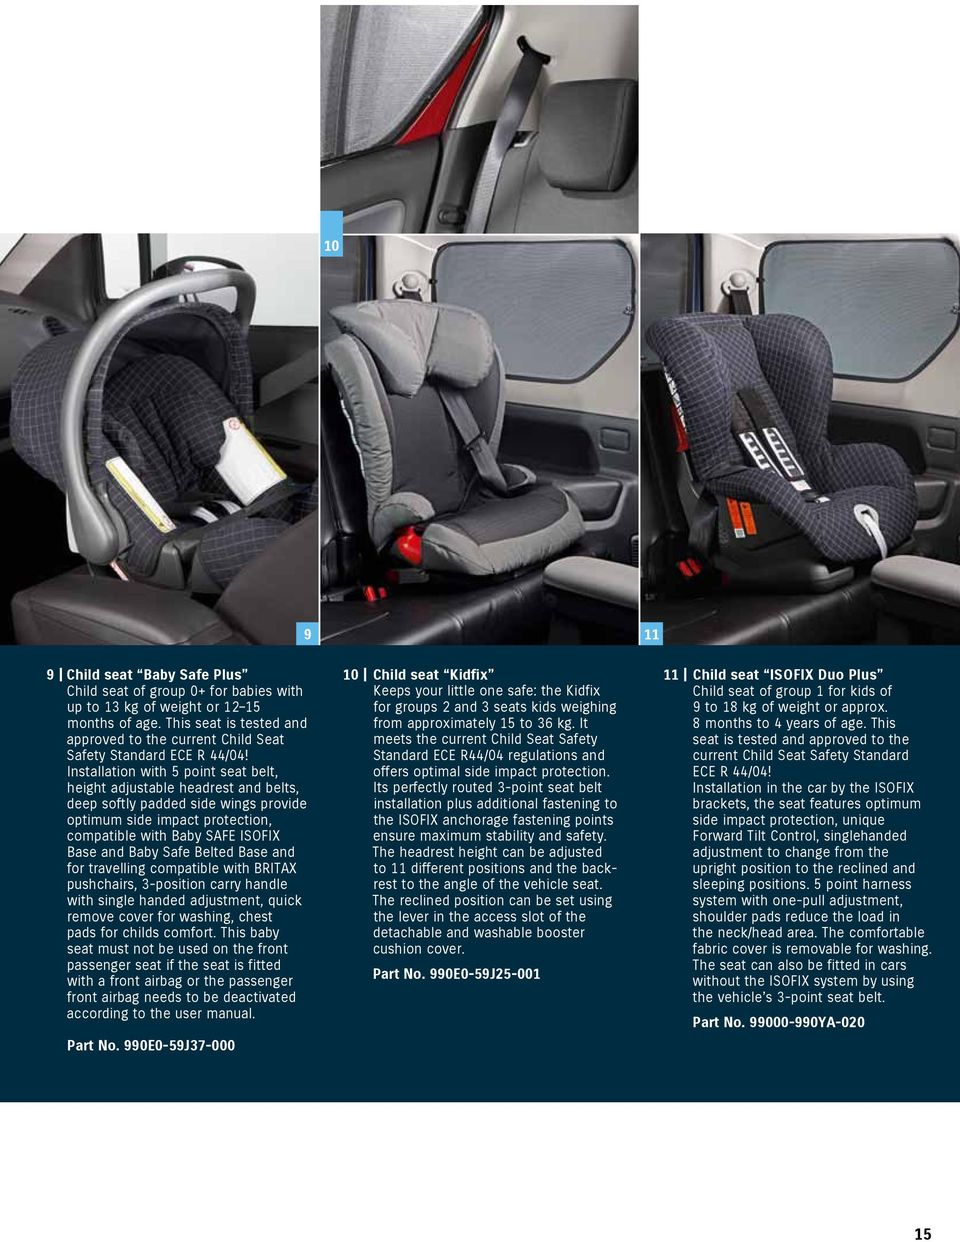 2000 Excursion 4x4 68l Engignition Switchwiring Harnesstrans Accessories Catalogue Pdf Installation With 5 Point Seat Belt Height Adjustable Headrest And Belts Deep Softly Padded